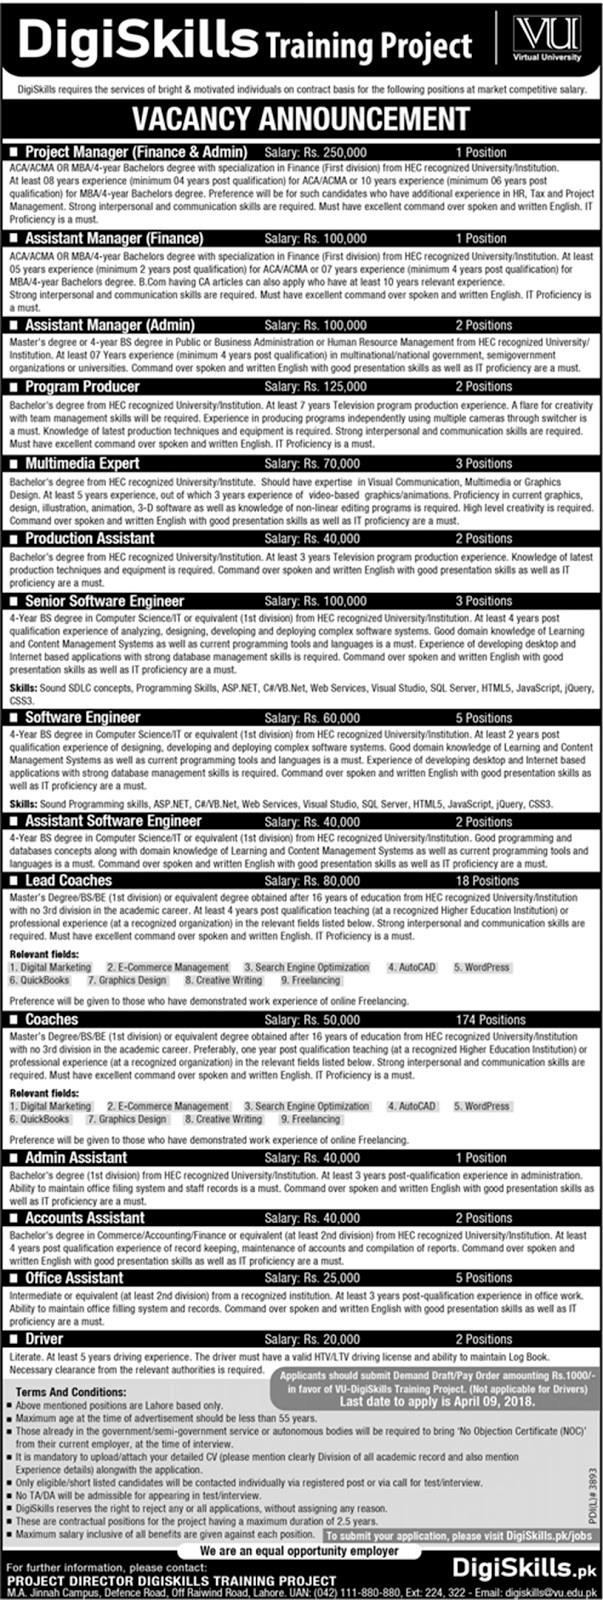 Jobs In Digisskills Training Projects Lahore 2018 for 223 Posts